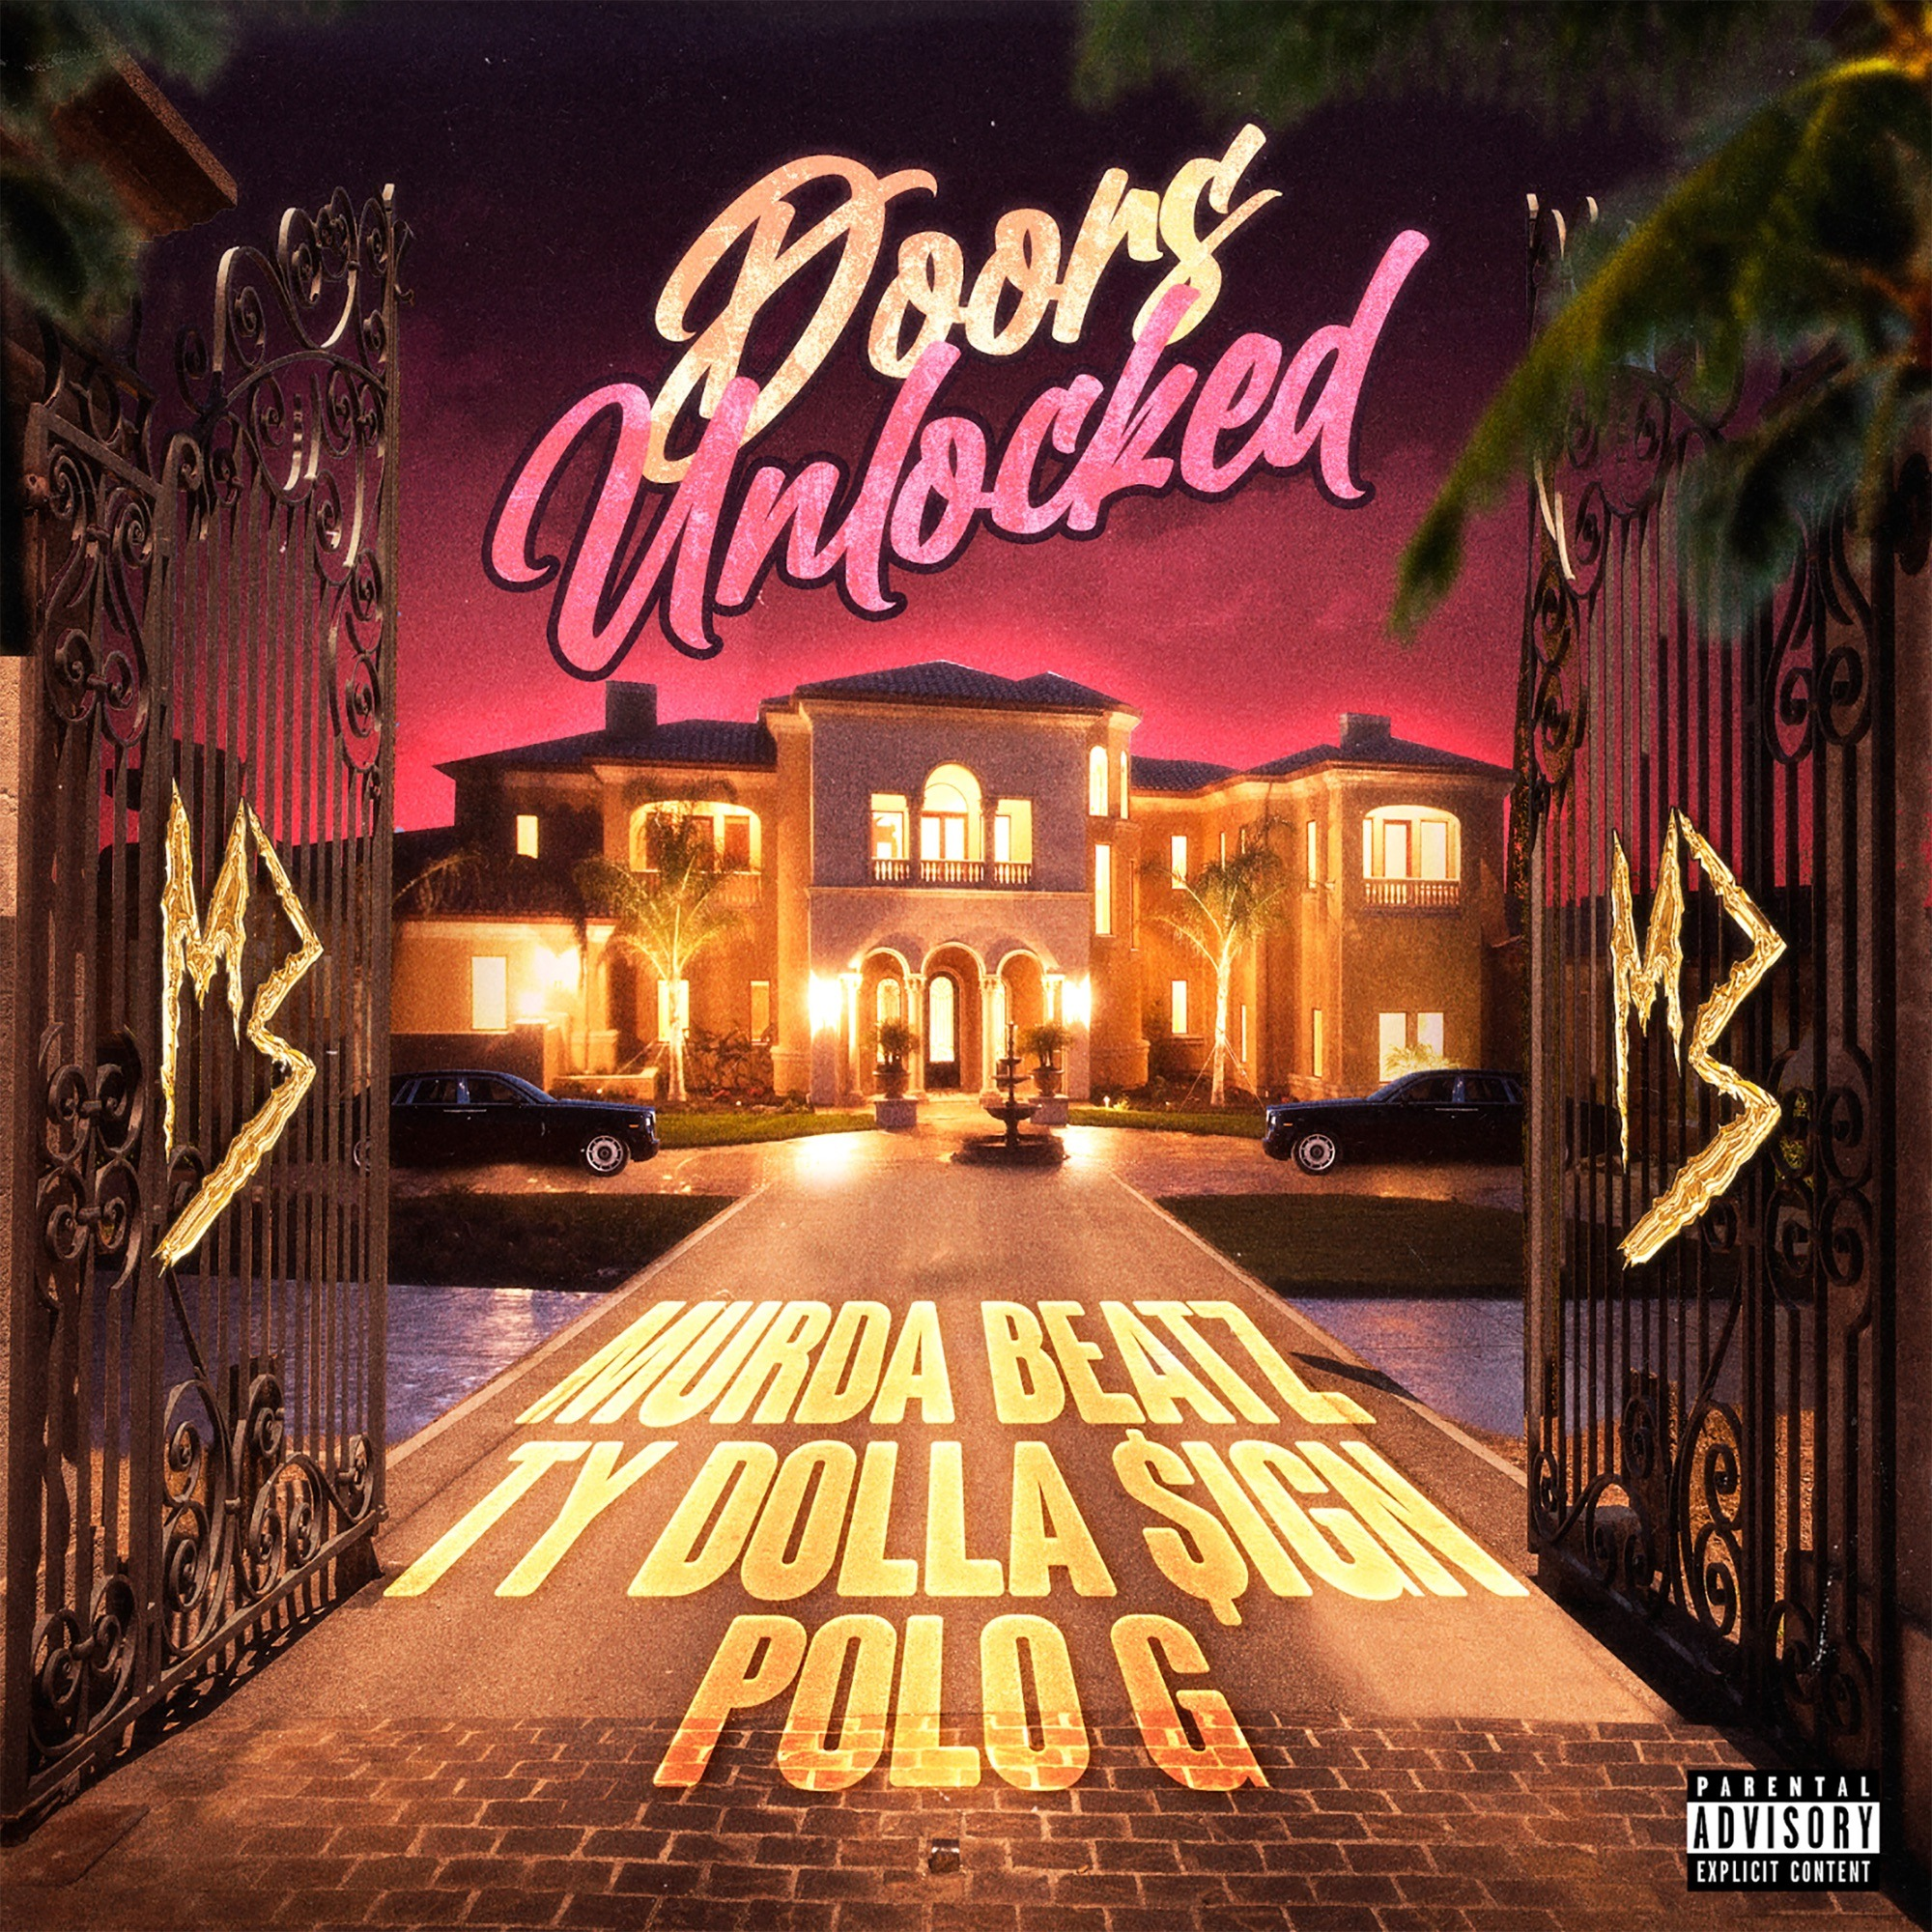 Murda Beatz feat. Ty Dolla $ign & Polo G – Doors Unlocked